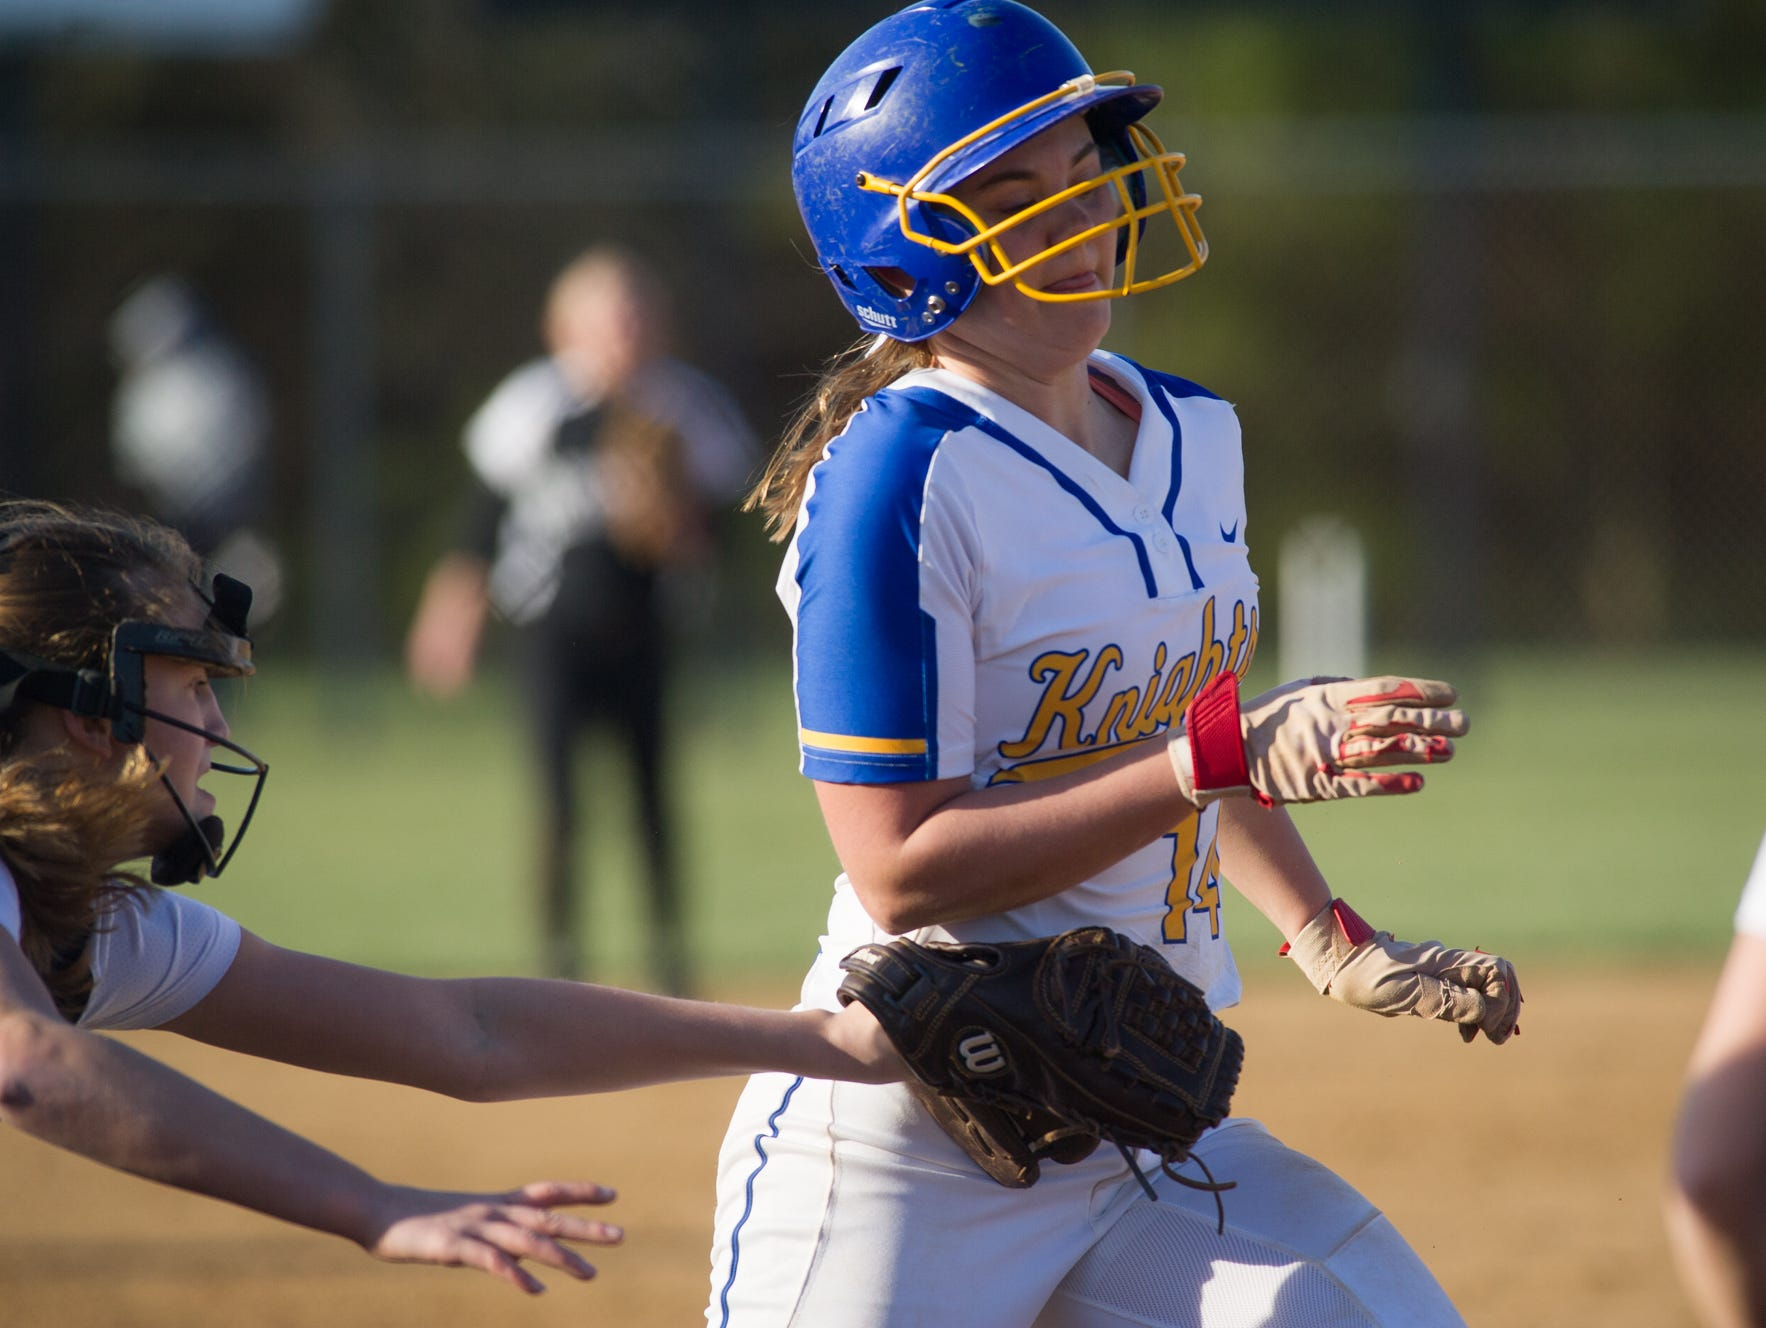 Sussex Tech's catcher Shannon Lord (7) tags out Sussex Central's Kasie Simpson (14) as she runs to home plate.